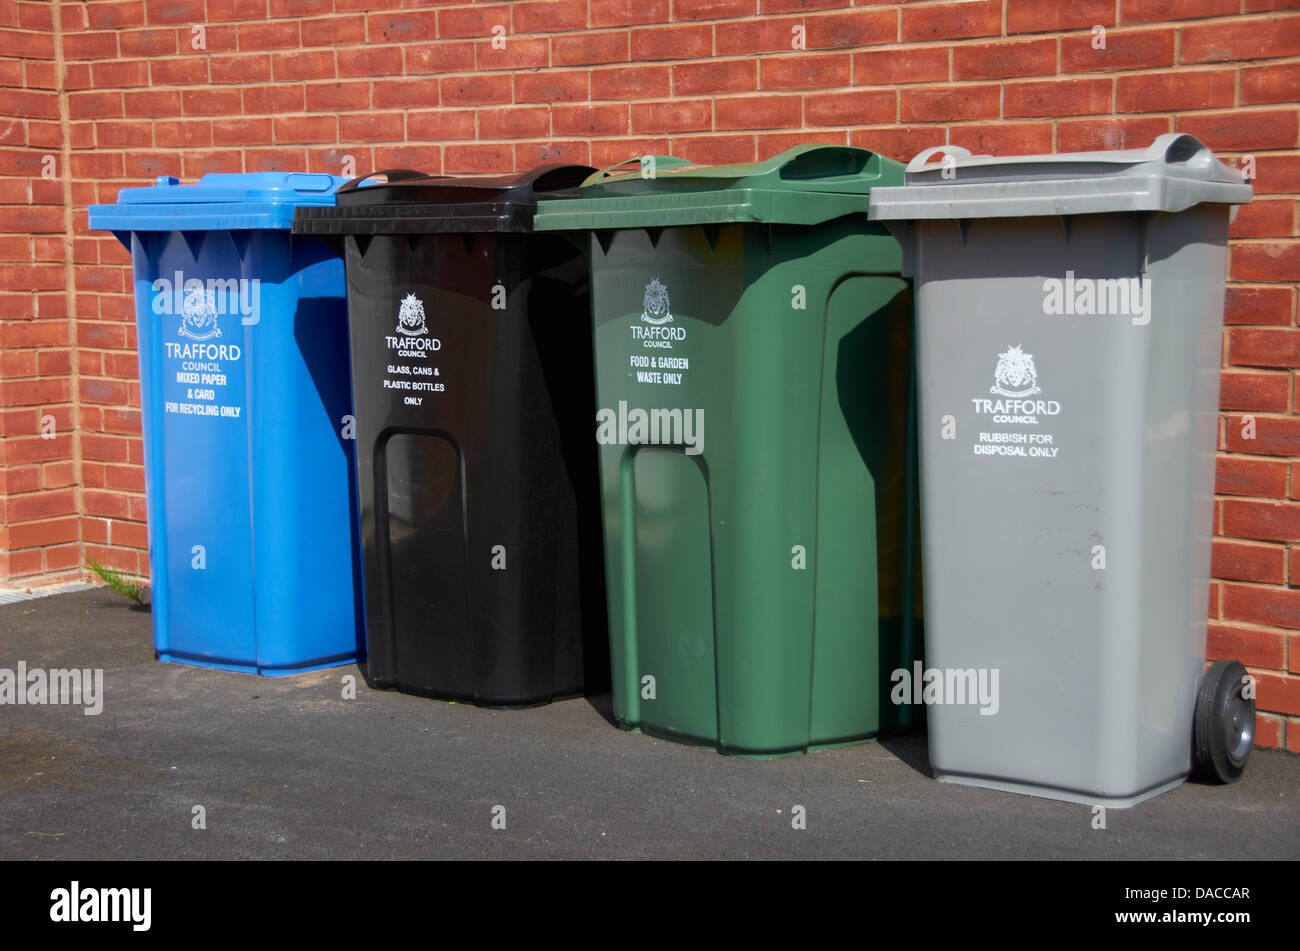 Bins outside a house ready for collection. - Stock Image